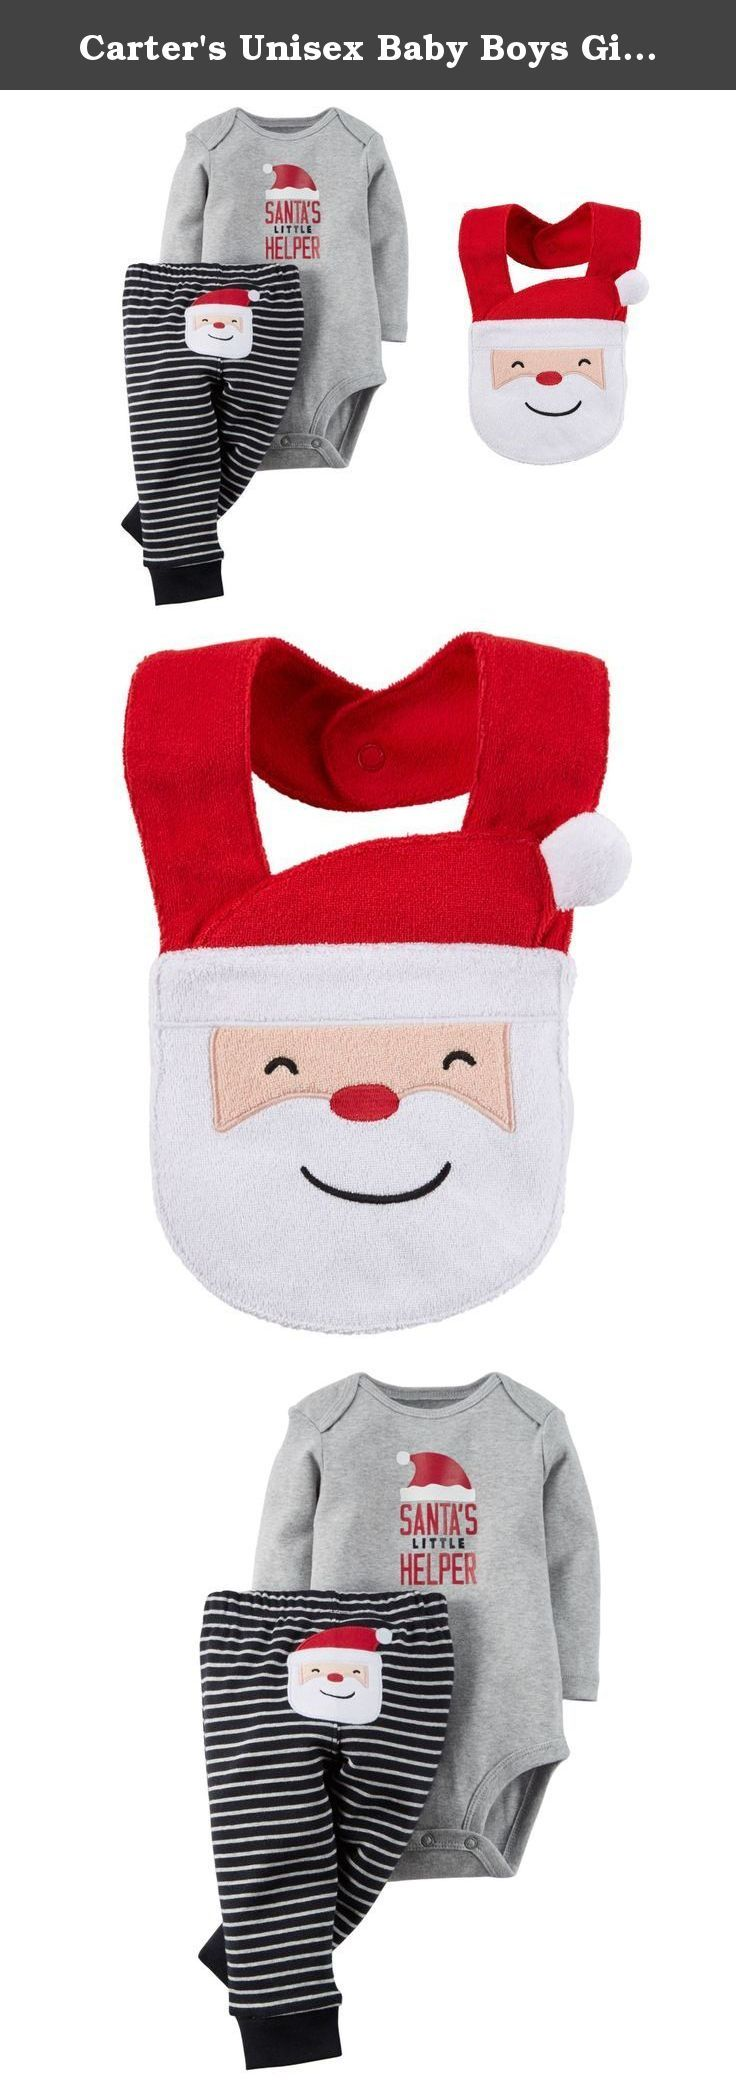 "Carter's Unisex Baby Boys Girls Santa's Little Helper Bodysuit and Pants Set with Bib (6 Months). Your little baby will ready for his first Christmas in this adorably festive ""Santa's Little Helper"" Bodysuit and Pants Set. Keep your little helper clean with the adorable matching Santa bib. 100% cotton and machine washable."